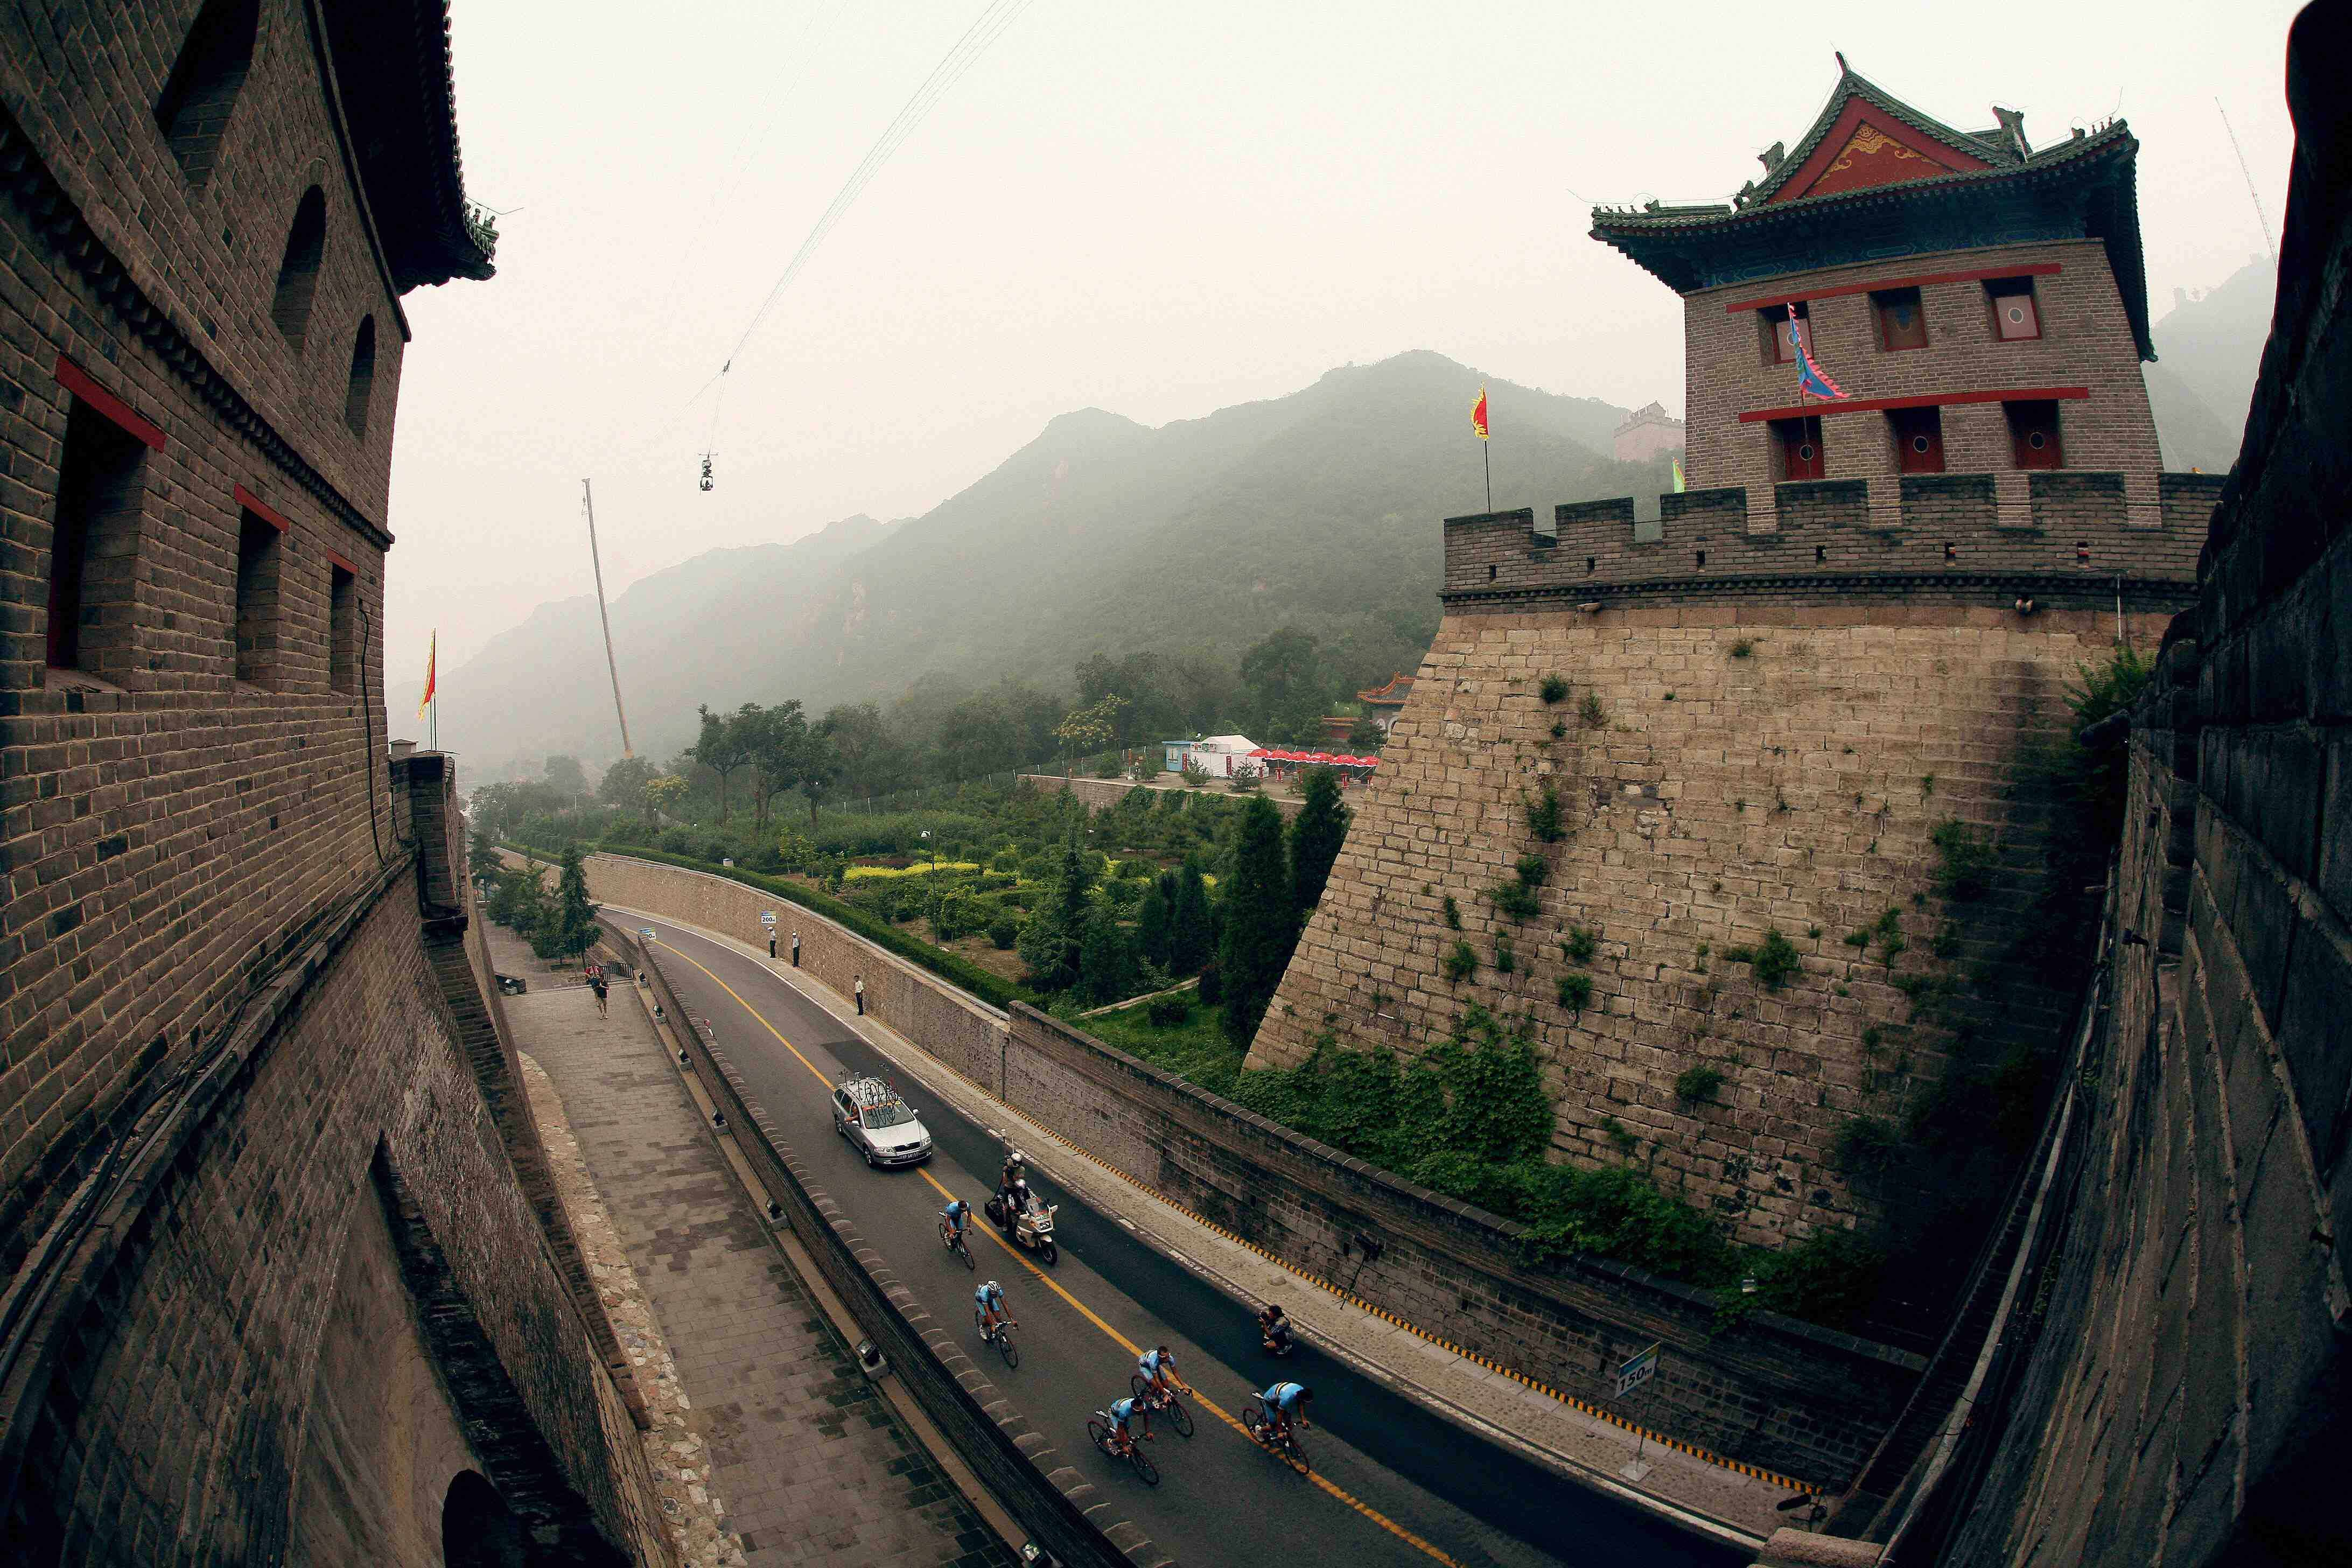 The Great Wall of China looms large over the road course.